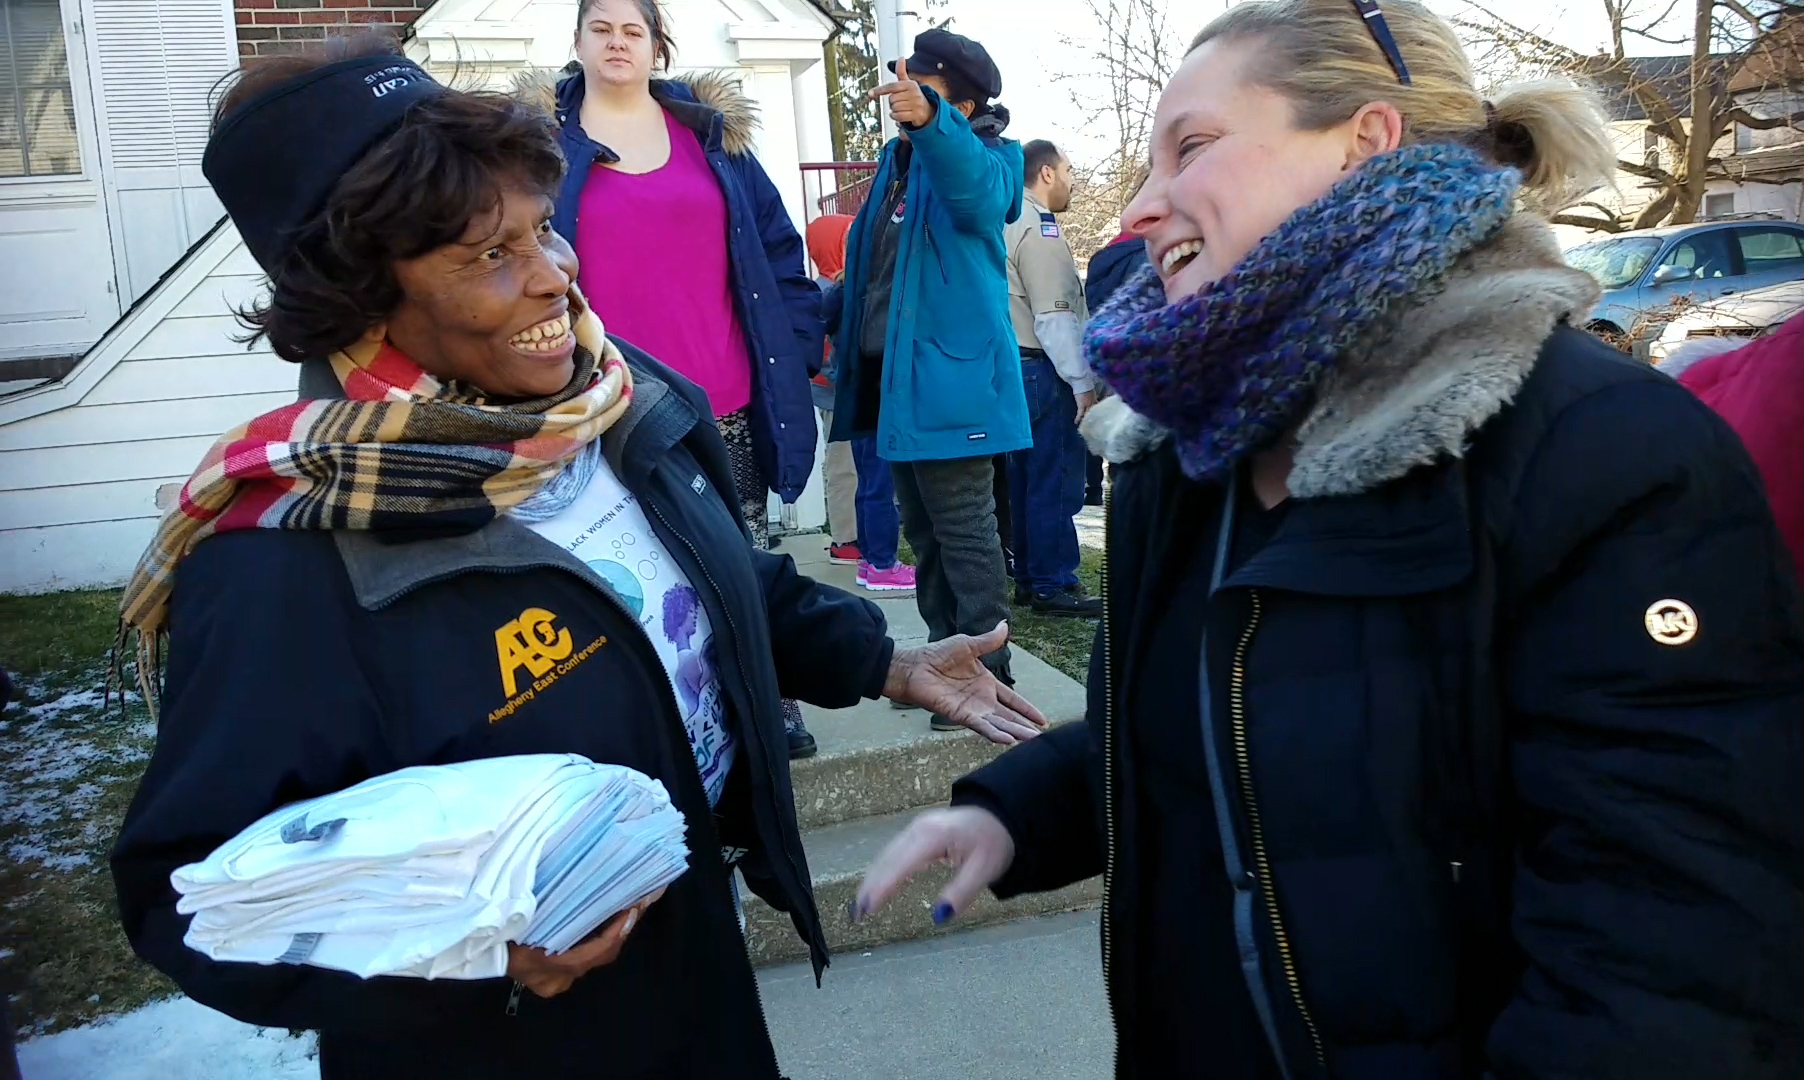 Atkinson Community Services Center in Coatesville Hosts 100-Plus Volunteers for Day of Service